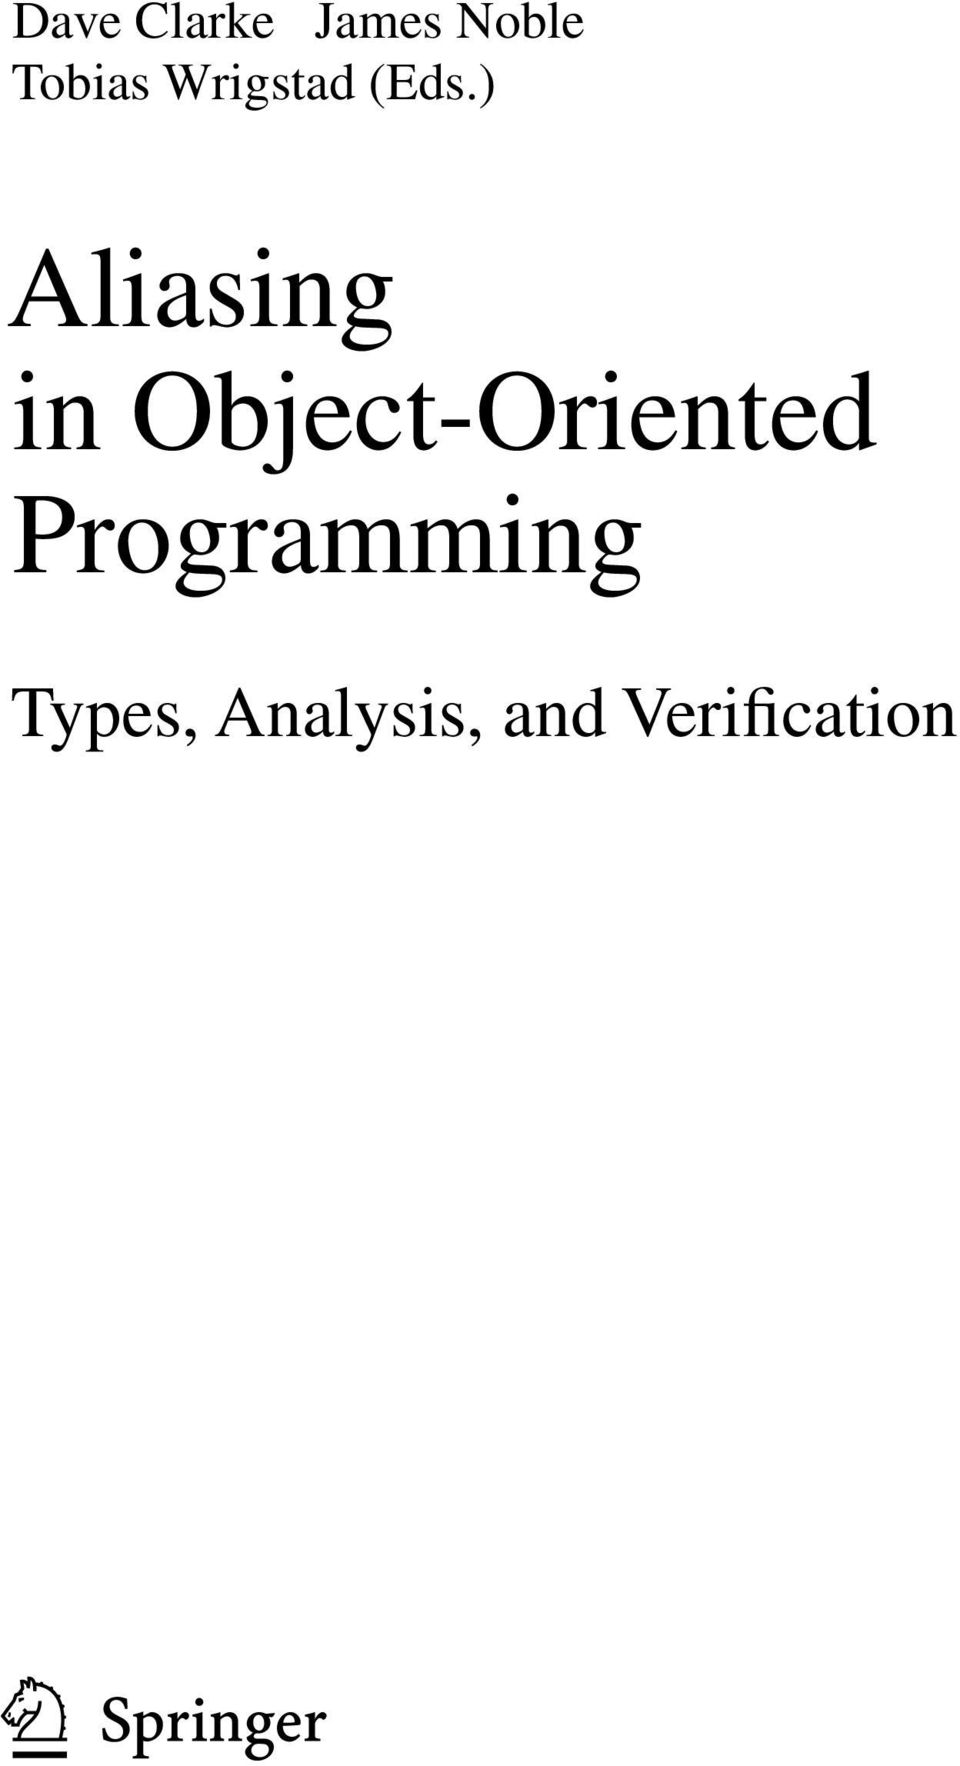 ) Aliasing in Object-Oriented